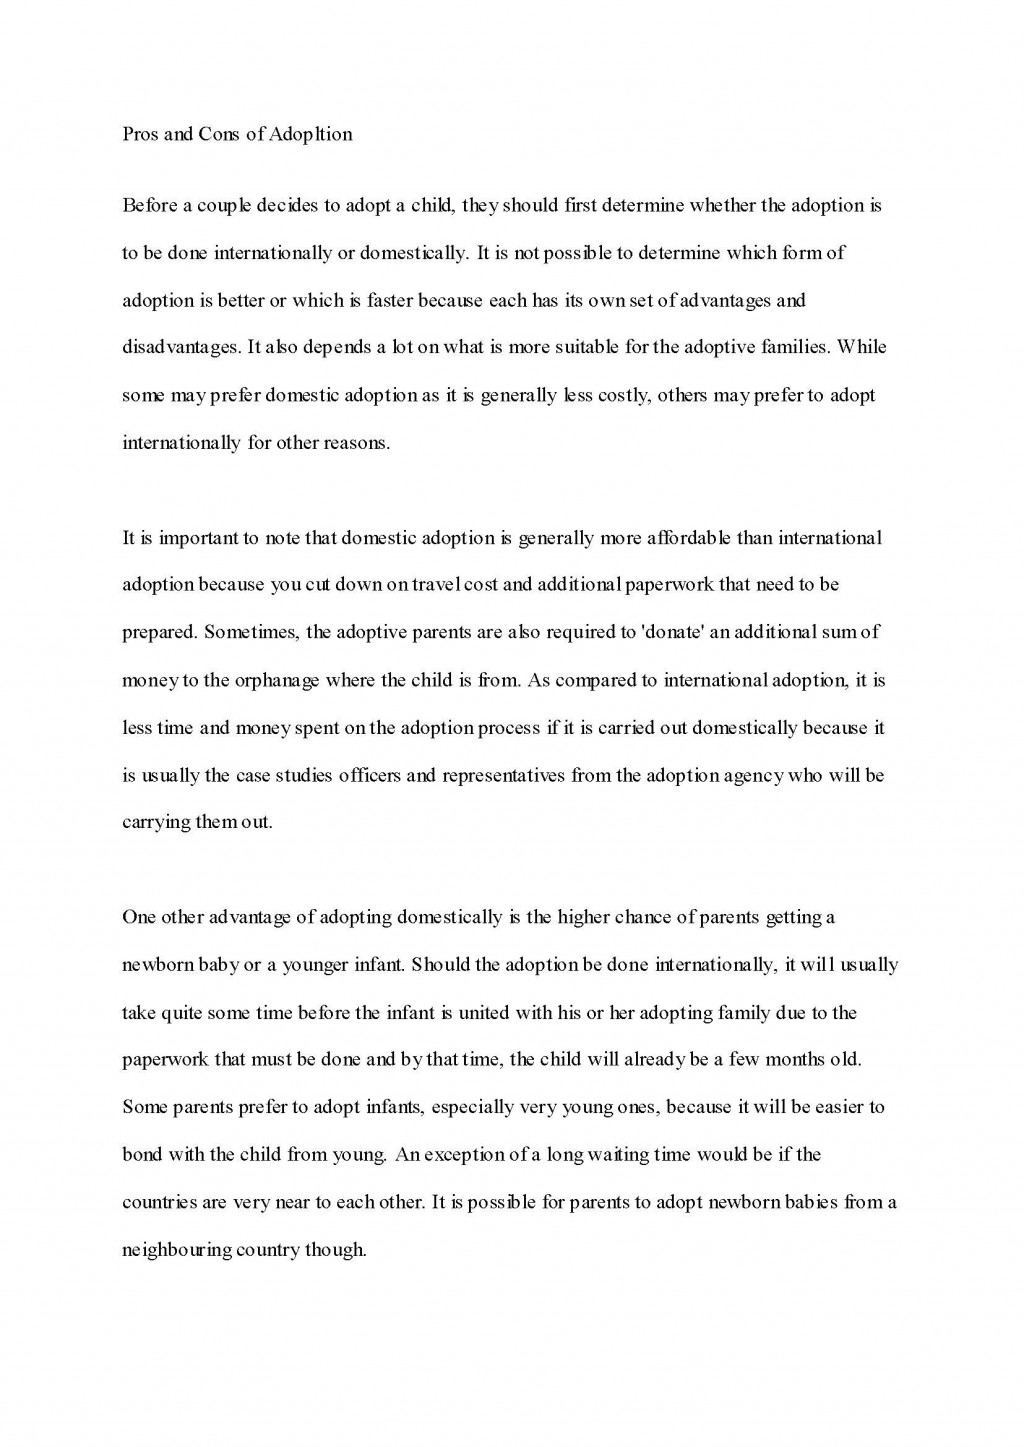 010 Adoption Essay Sample High School Admission Essays Unusual Free Example Large